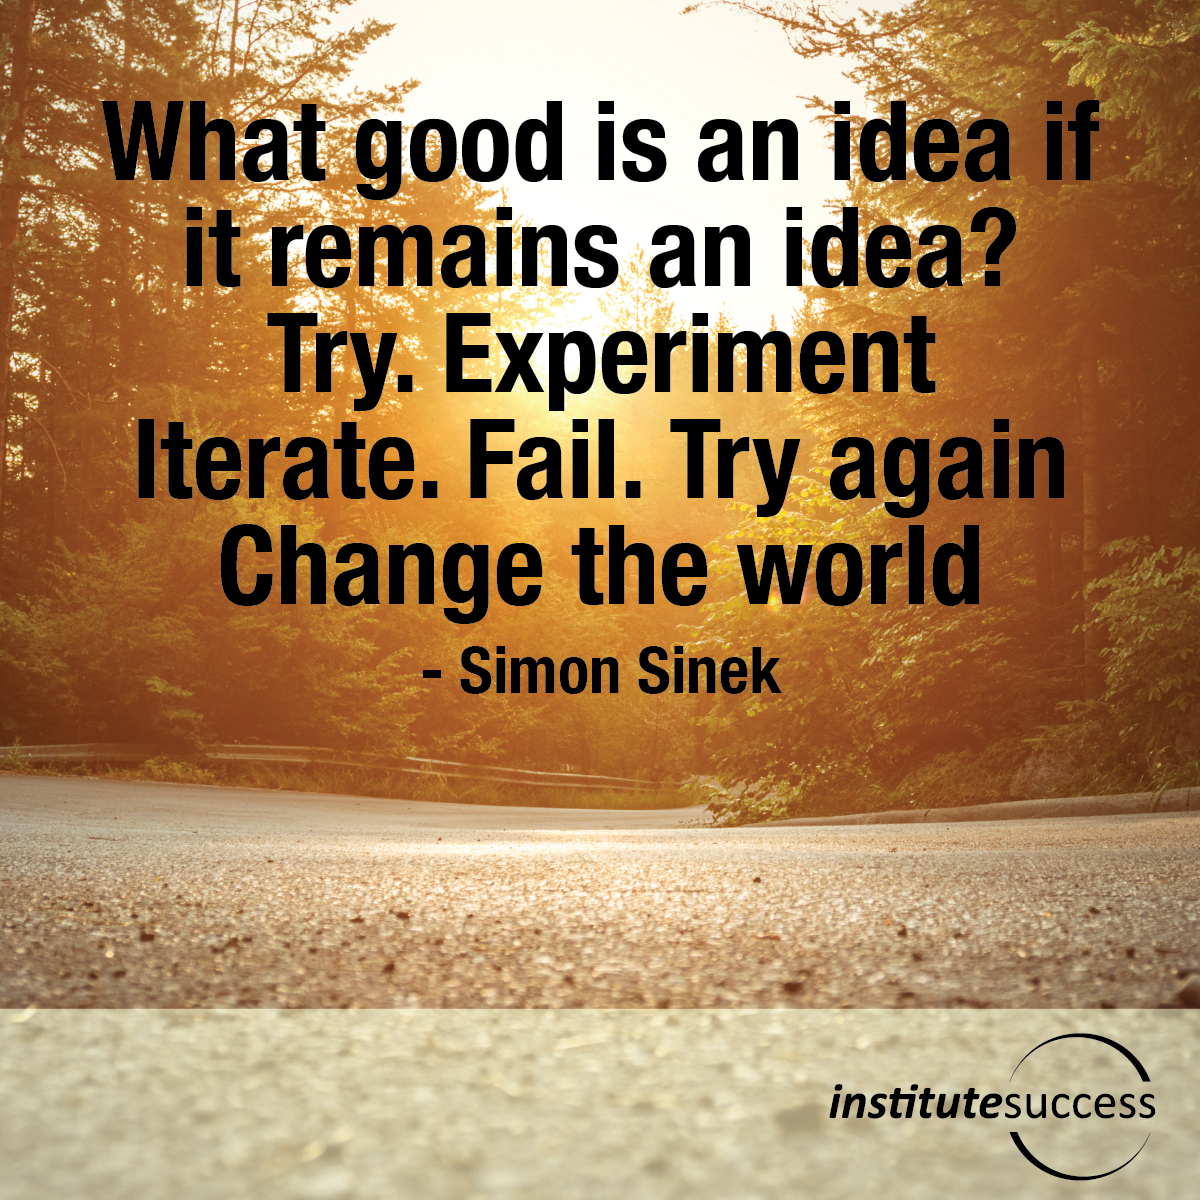 What good is an idea if it remains an idea? Try. Experiment. Iterate. Fail. Try again. Change the world – Simon Sinek